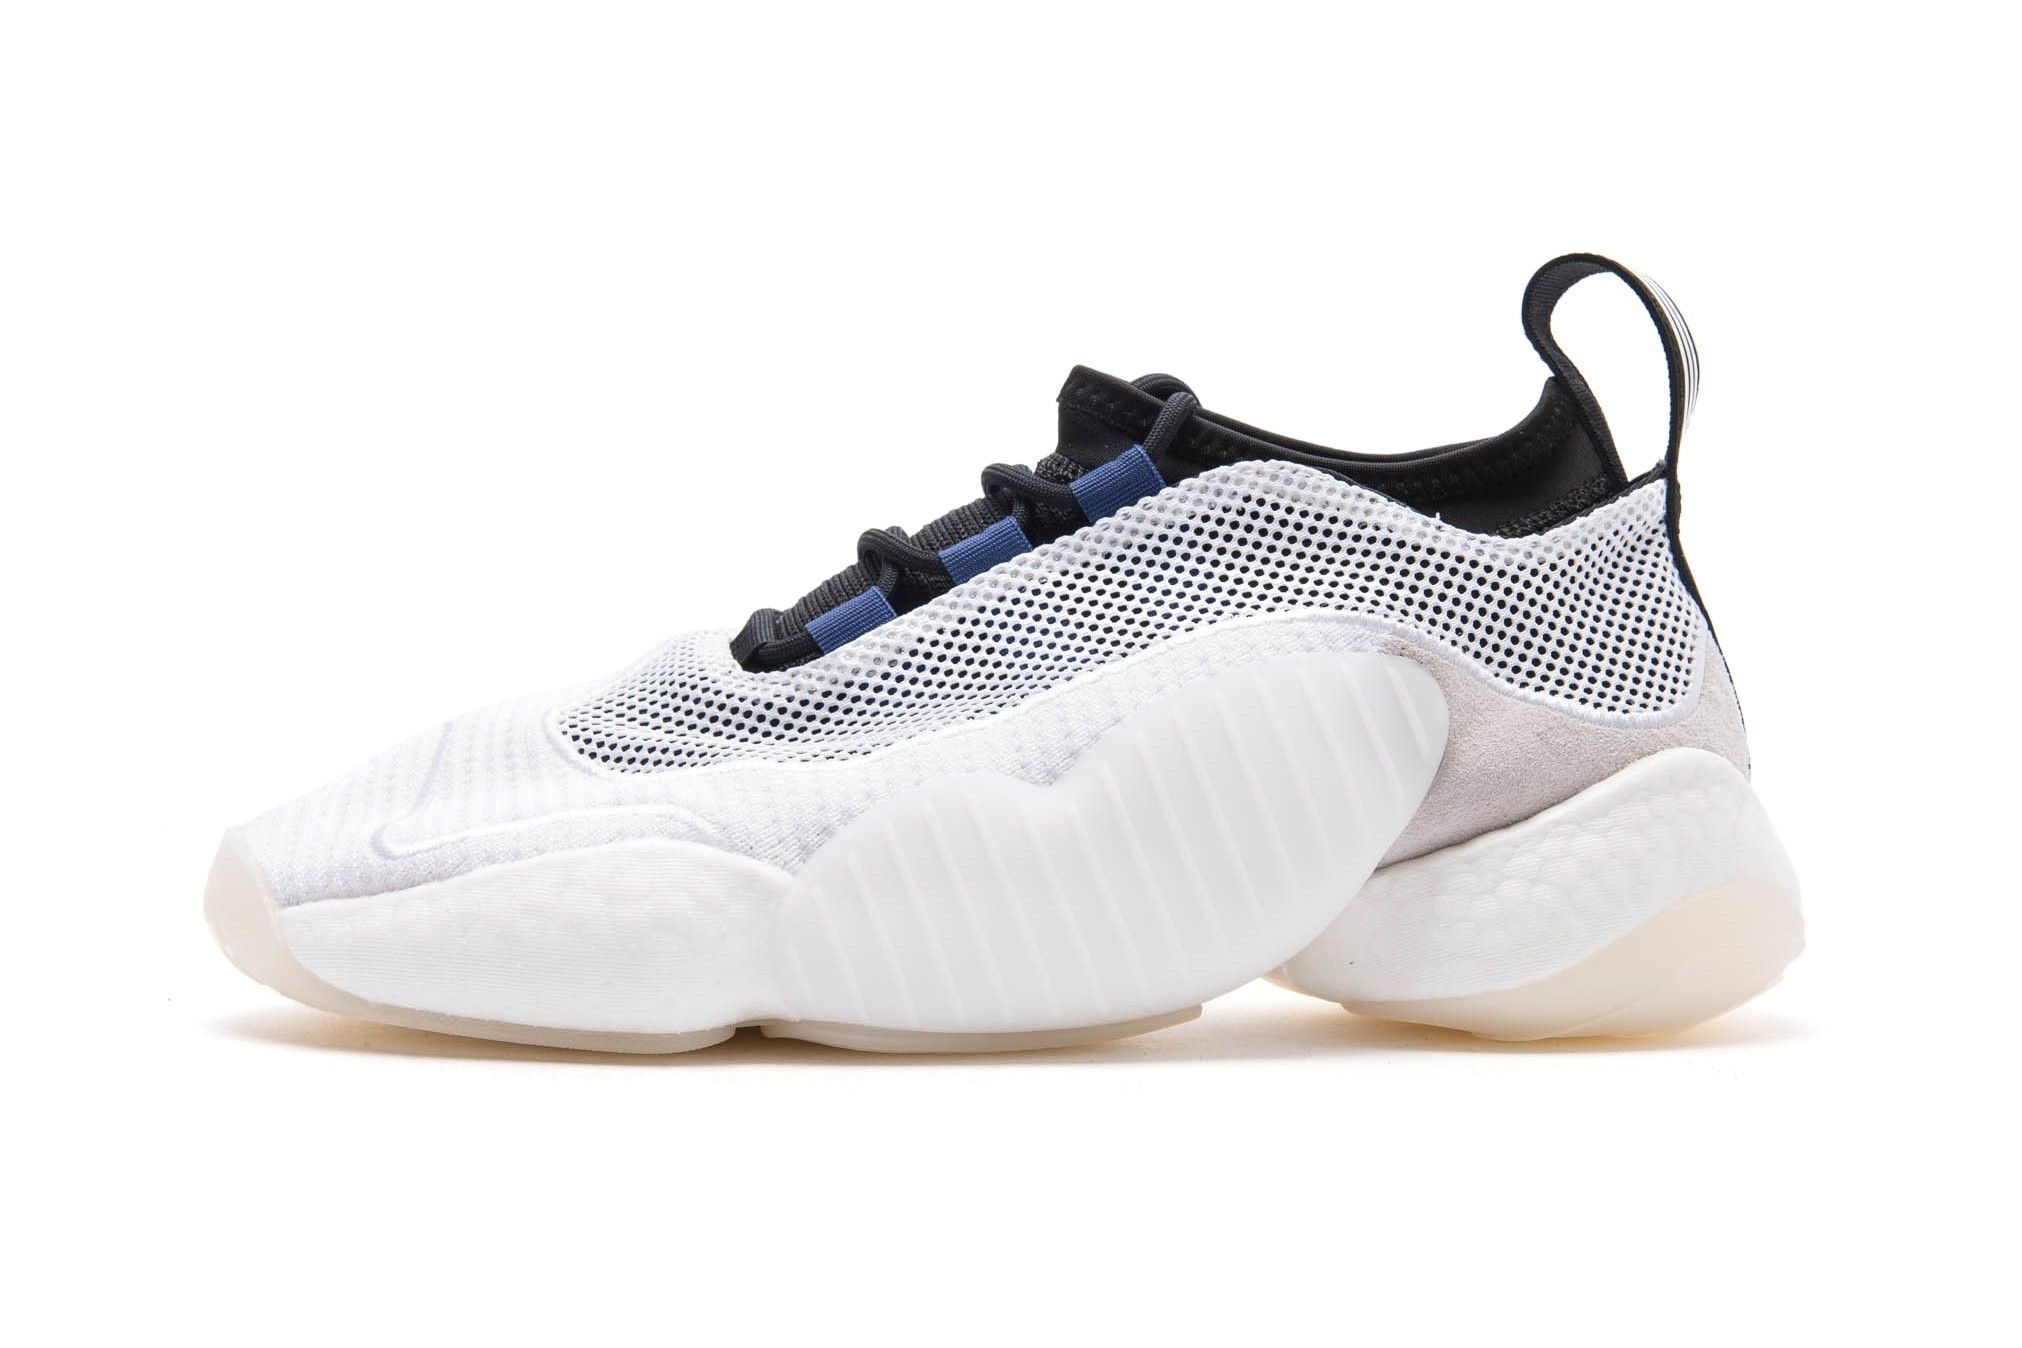 baa80acaeb6f adidas s Crazy BYW LVL 2 Makes a Return in Simplistic White Black ...